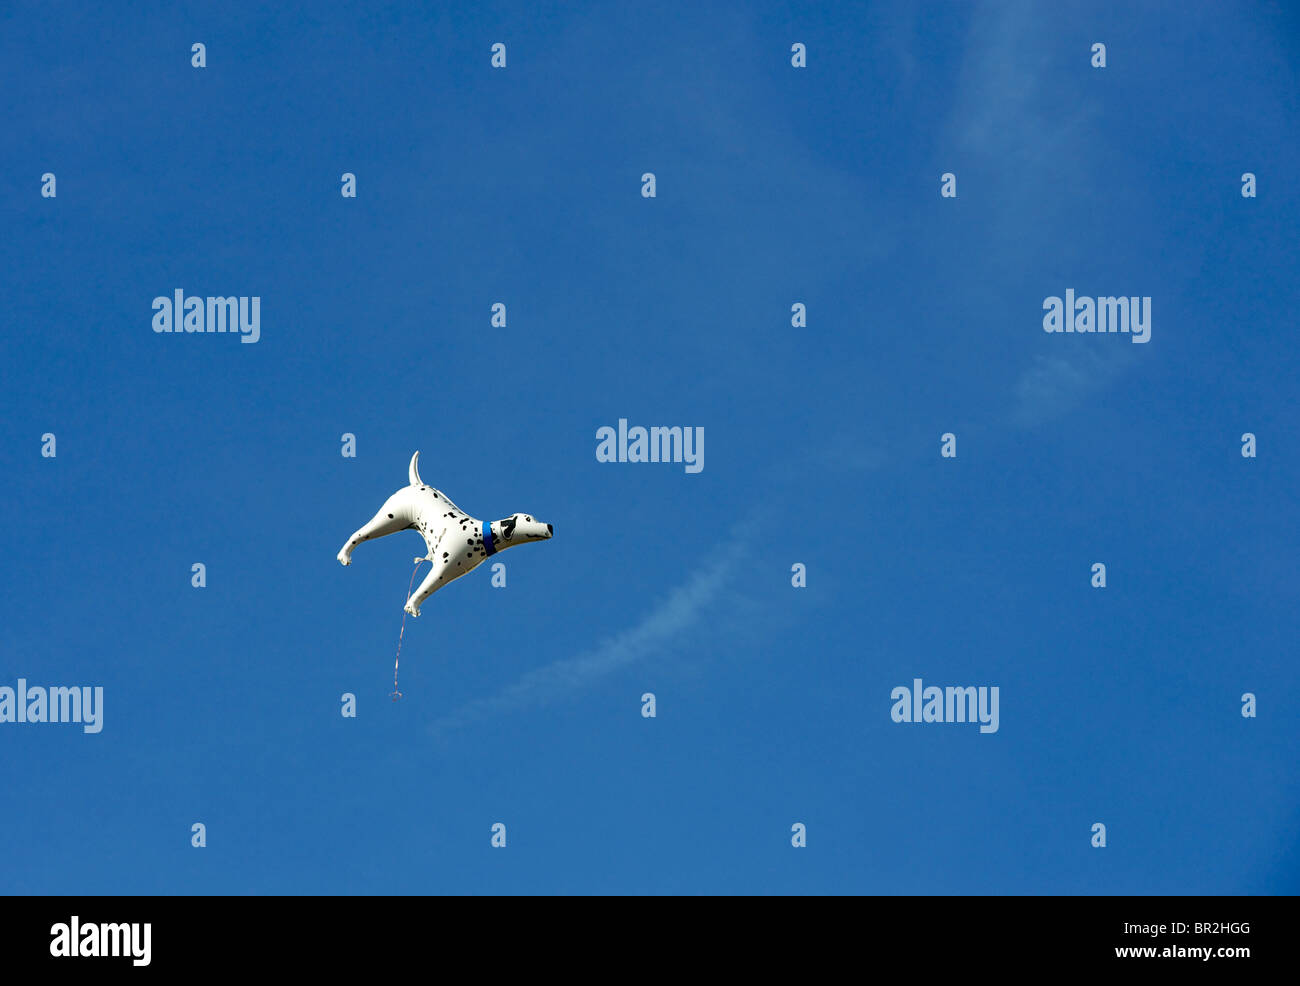 Runaway ballon in the shape of a dalmation dog against a blue sky. - Stock Image